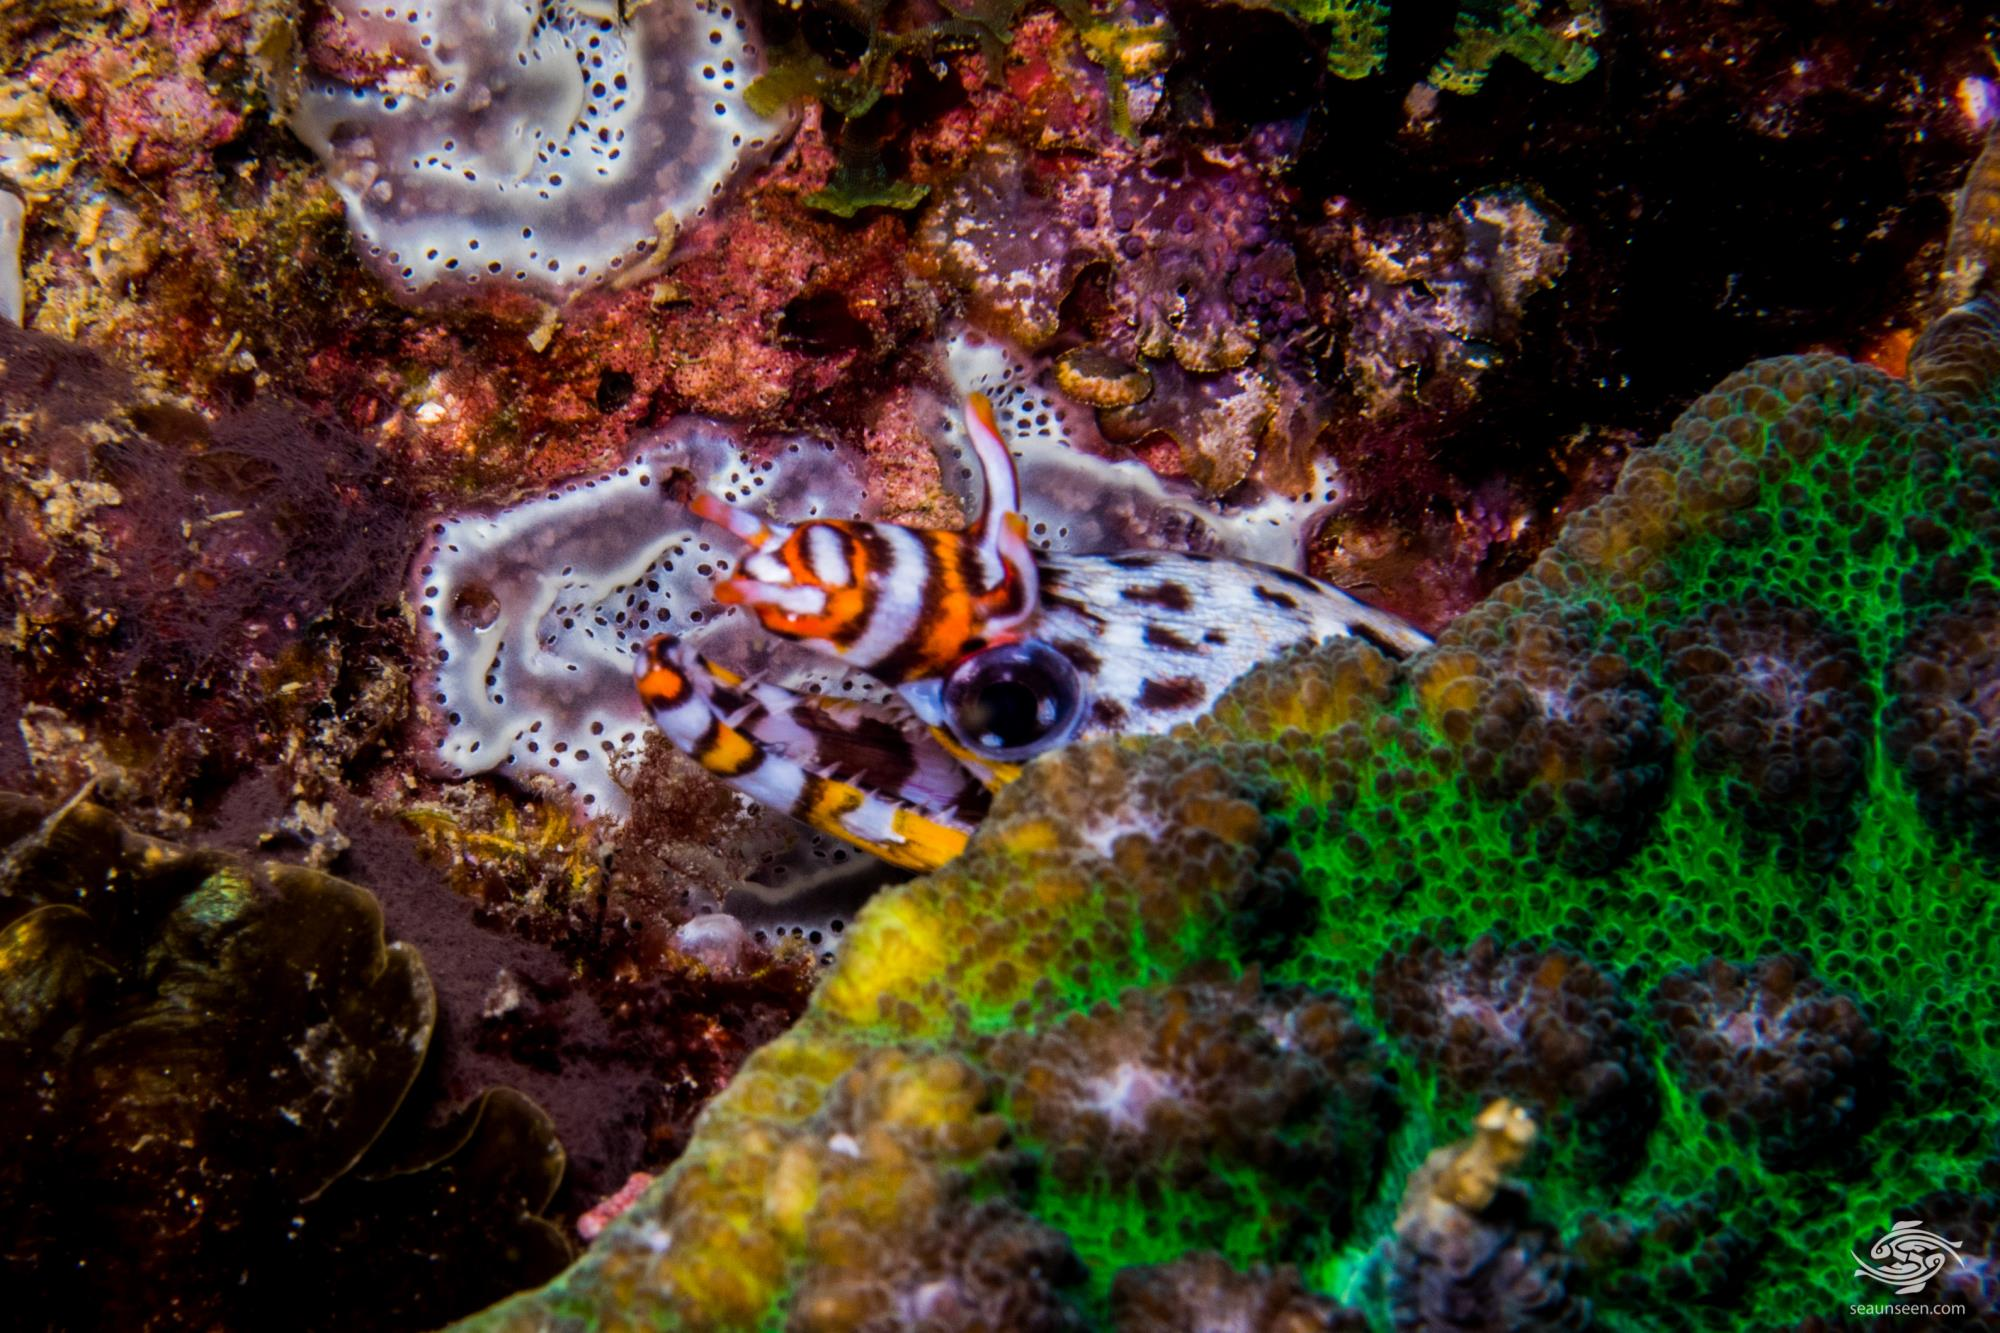 Dragon Moray Eel, Enchelycore pardalis is also known as the Dragon Moray Eel